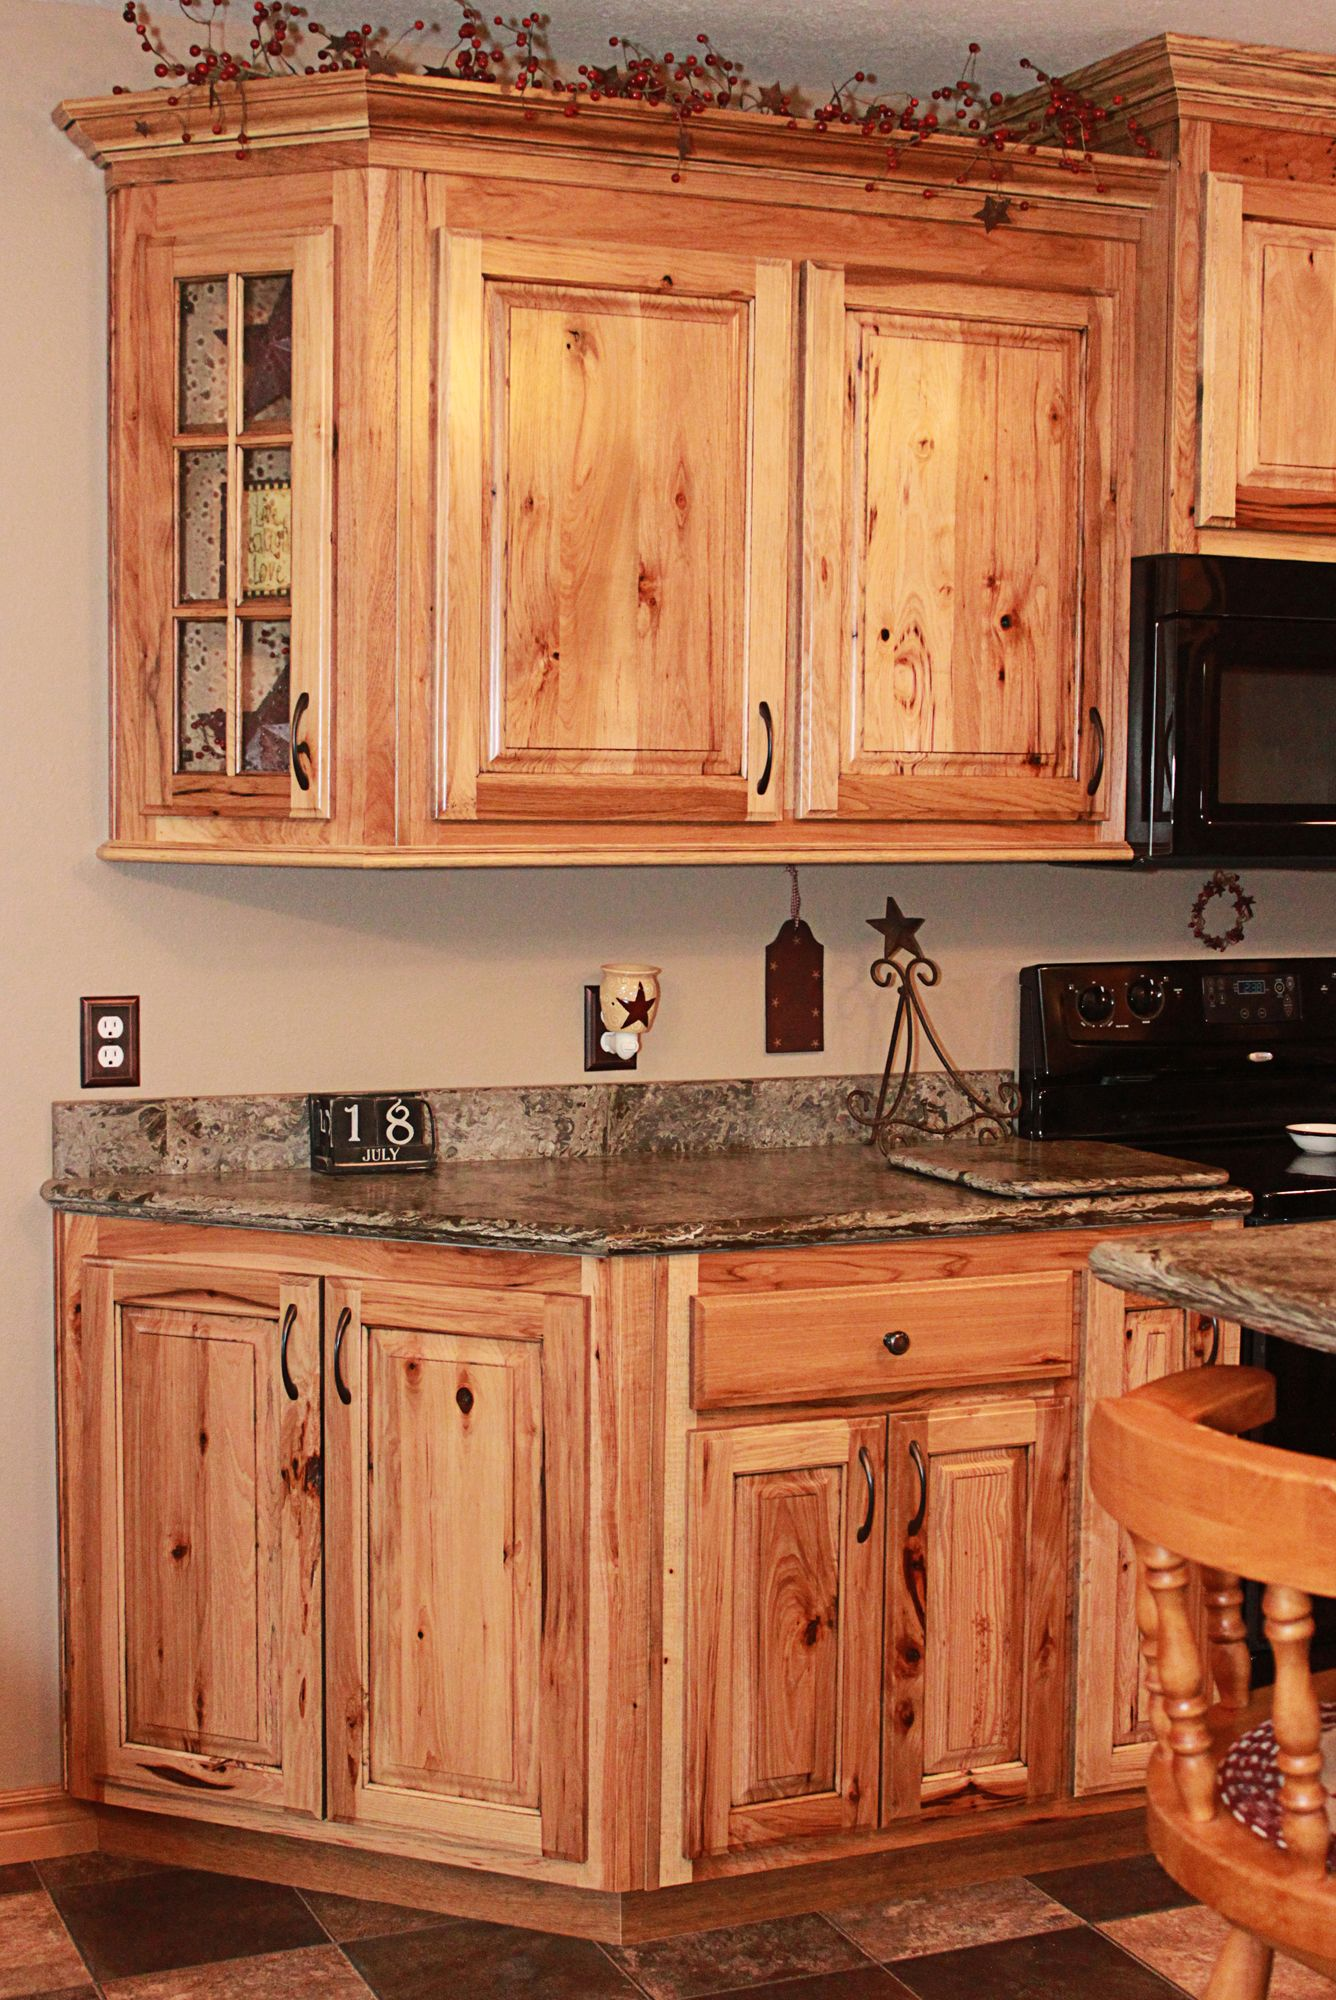 Pin von Cabinets Plus auf Rustic Hickory Cabinets | Pinterest ...